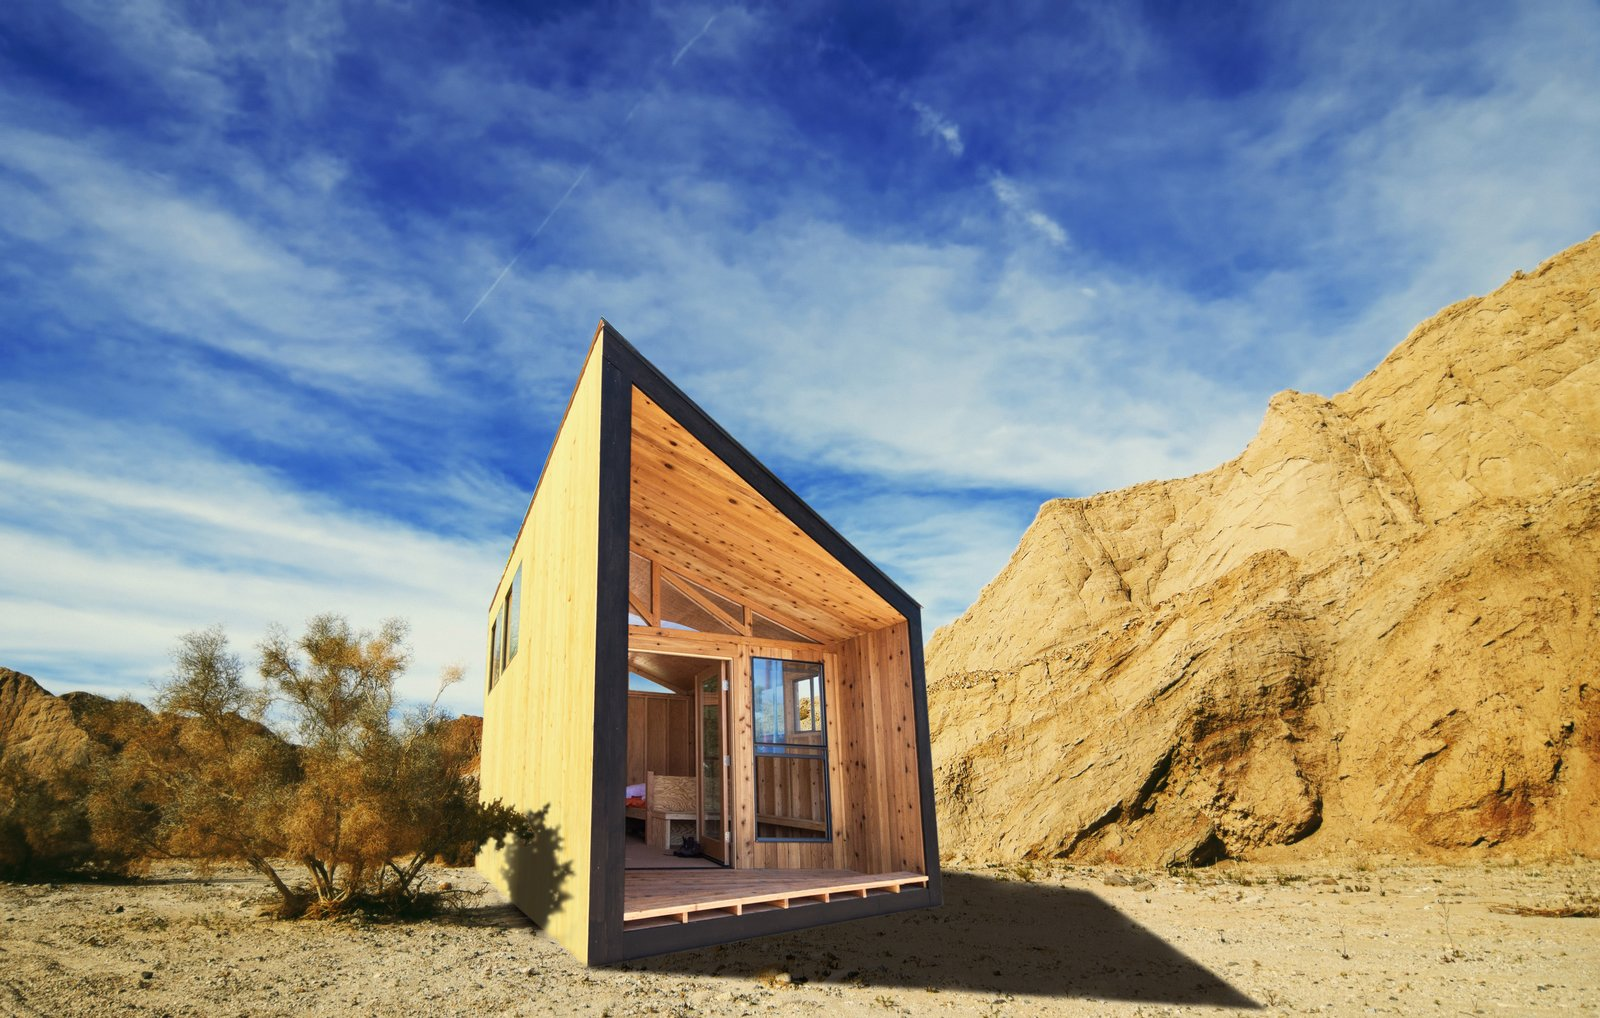 #prefab #desert #outdoor #exterior #outside #modern #midcentury #landscape #camping #Pomona #California  Cabin by DAVE MORIN